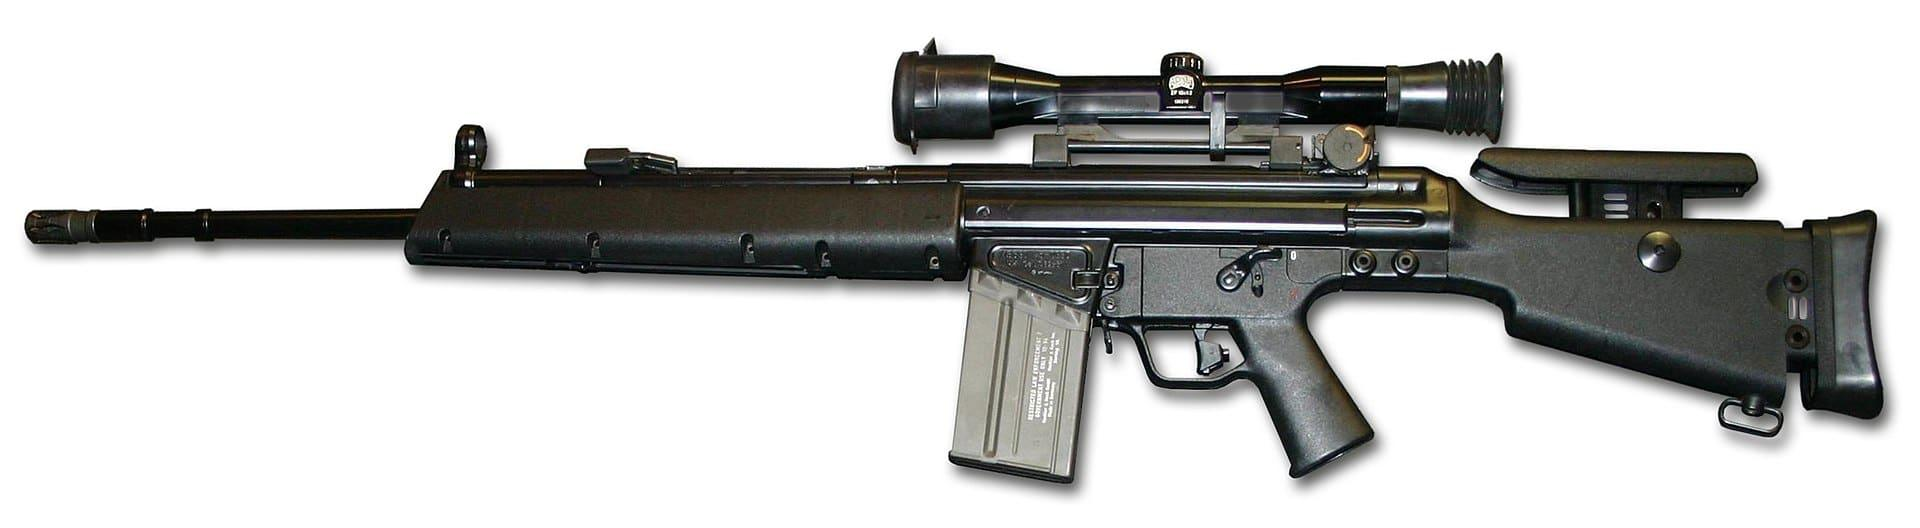 A militarized version of the PSG1: Heckler and Koch MSG90